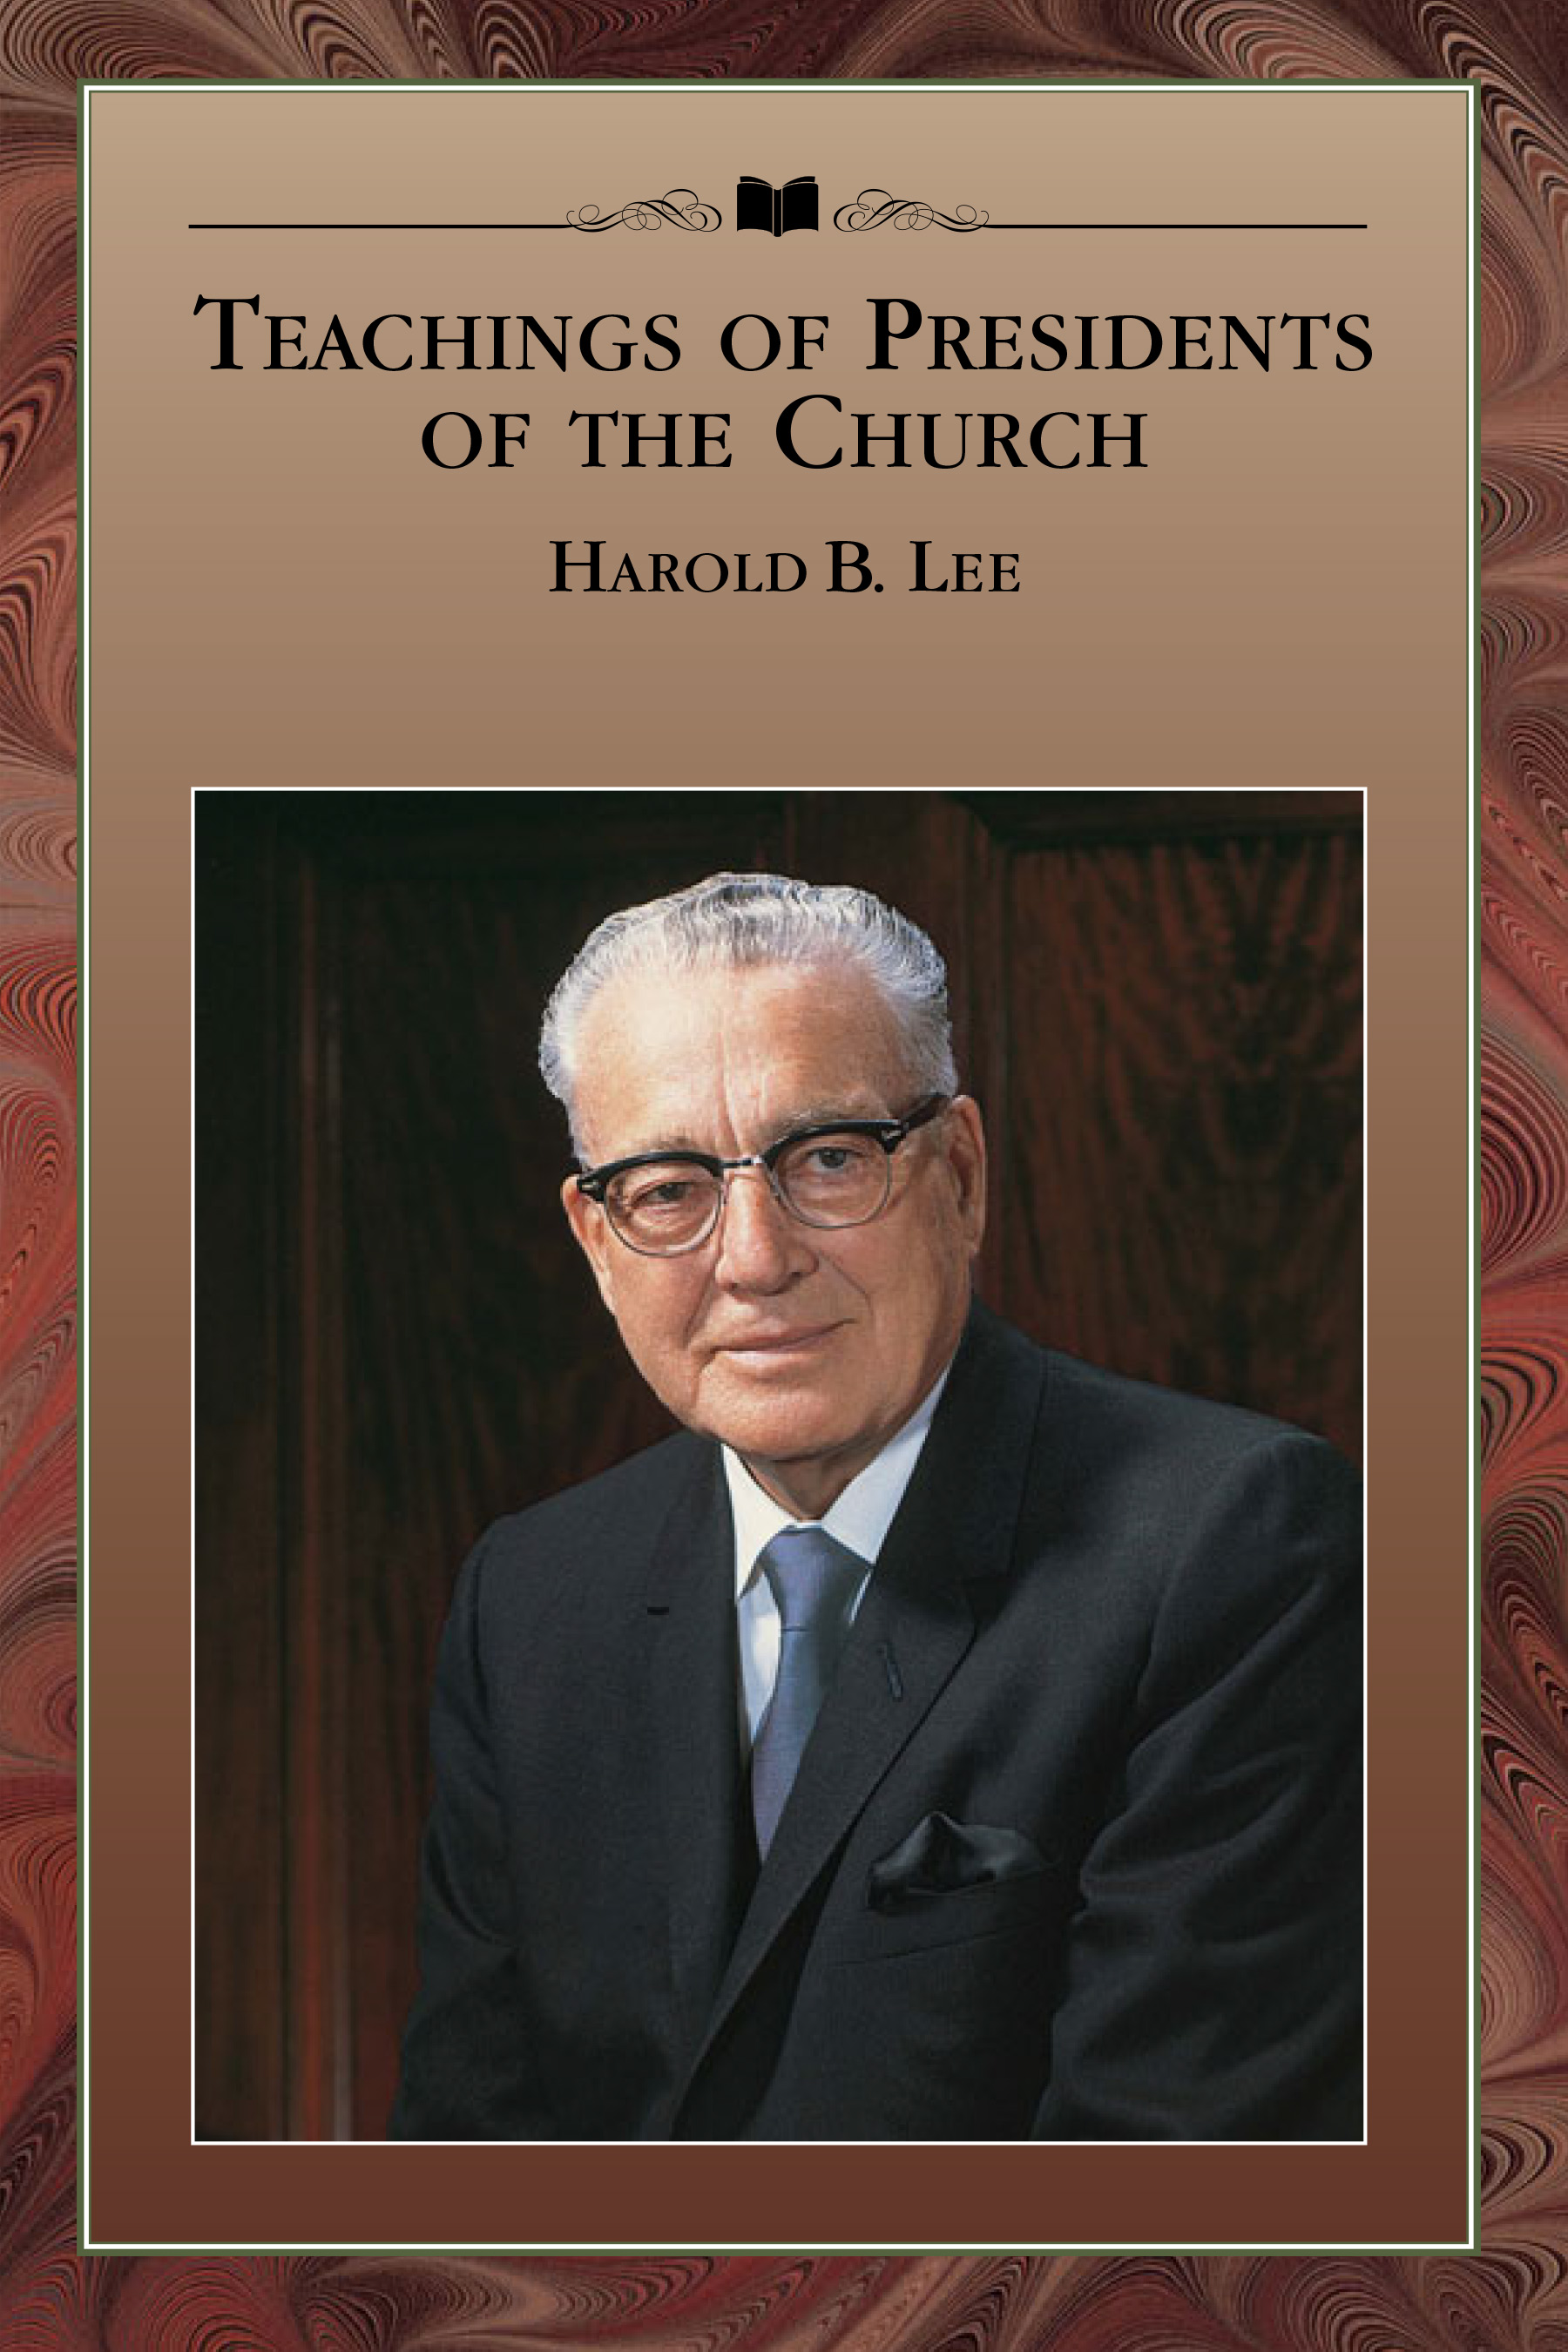 Teaching of Presidents of the Church: Harold B. Lee